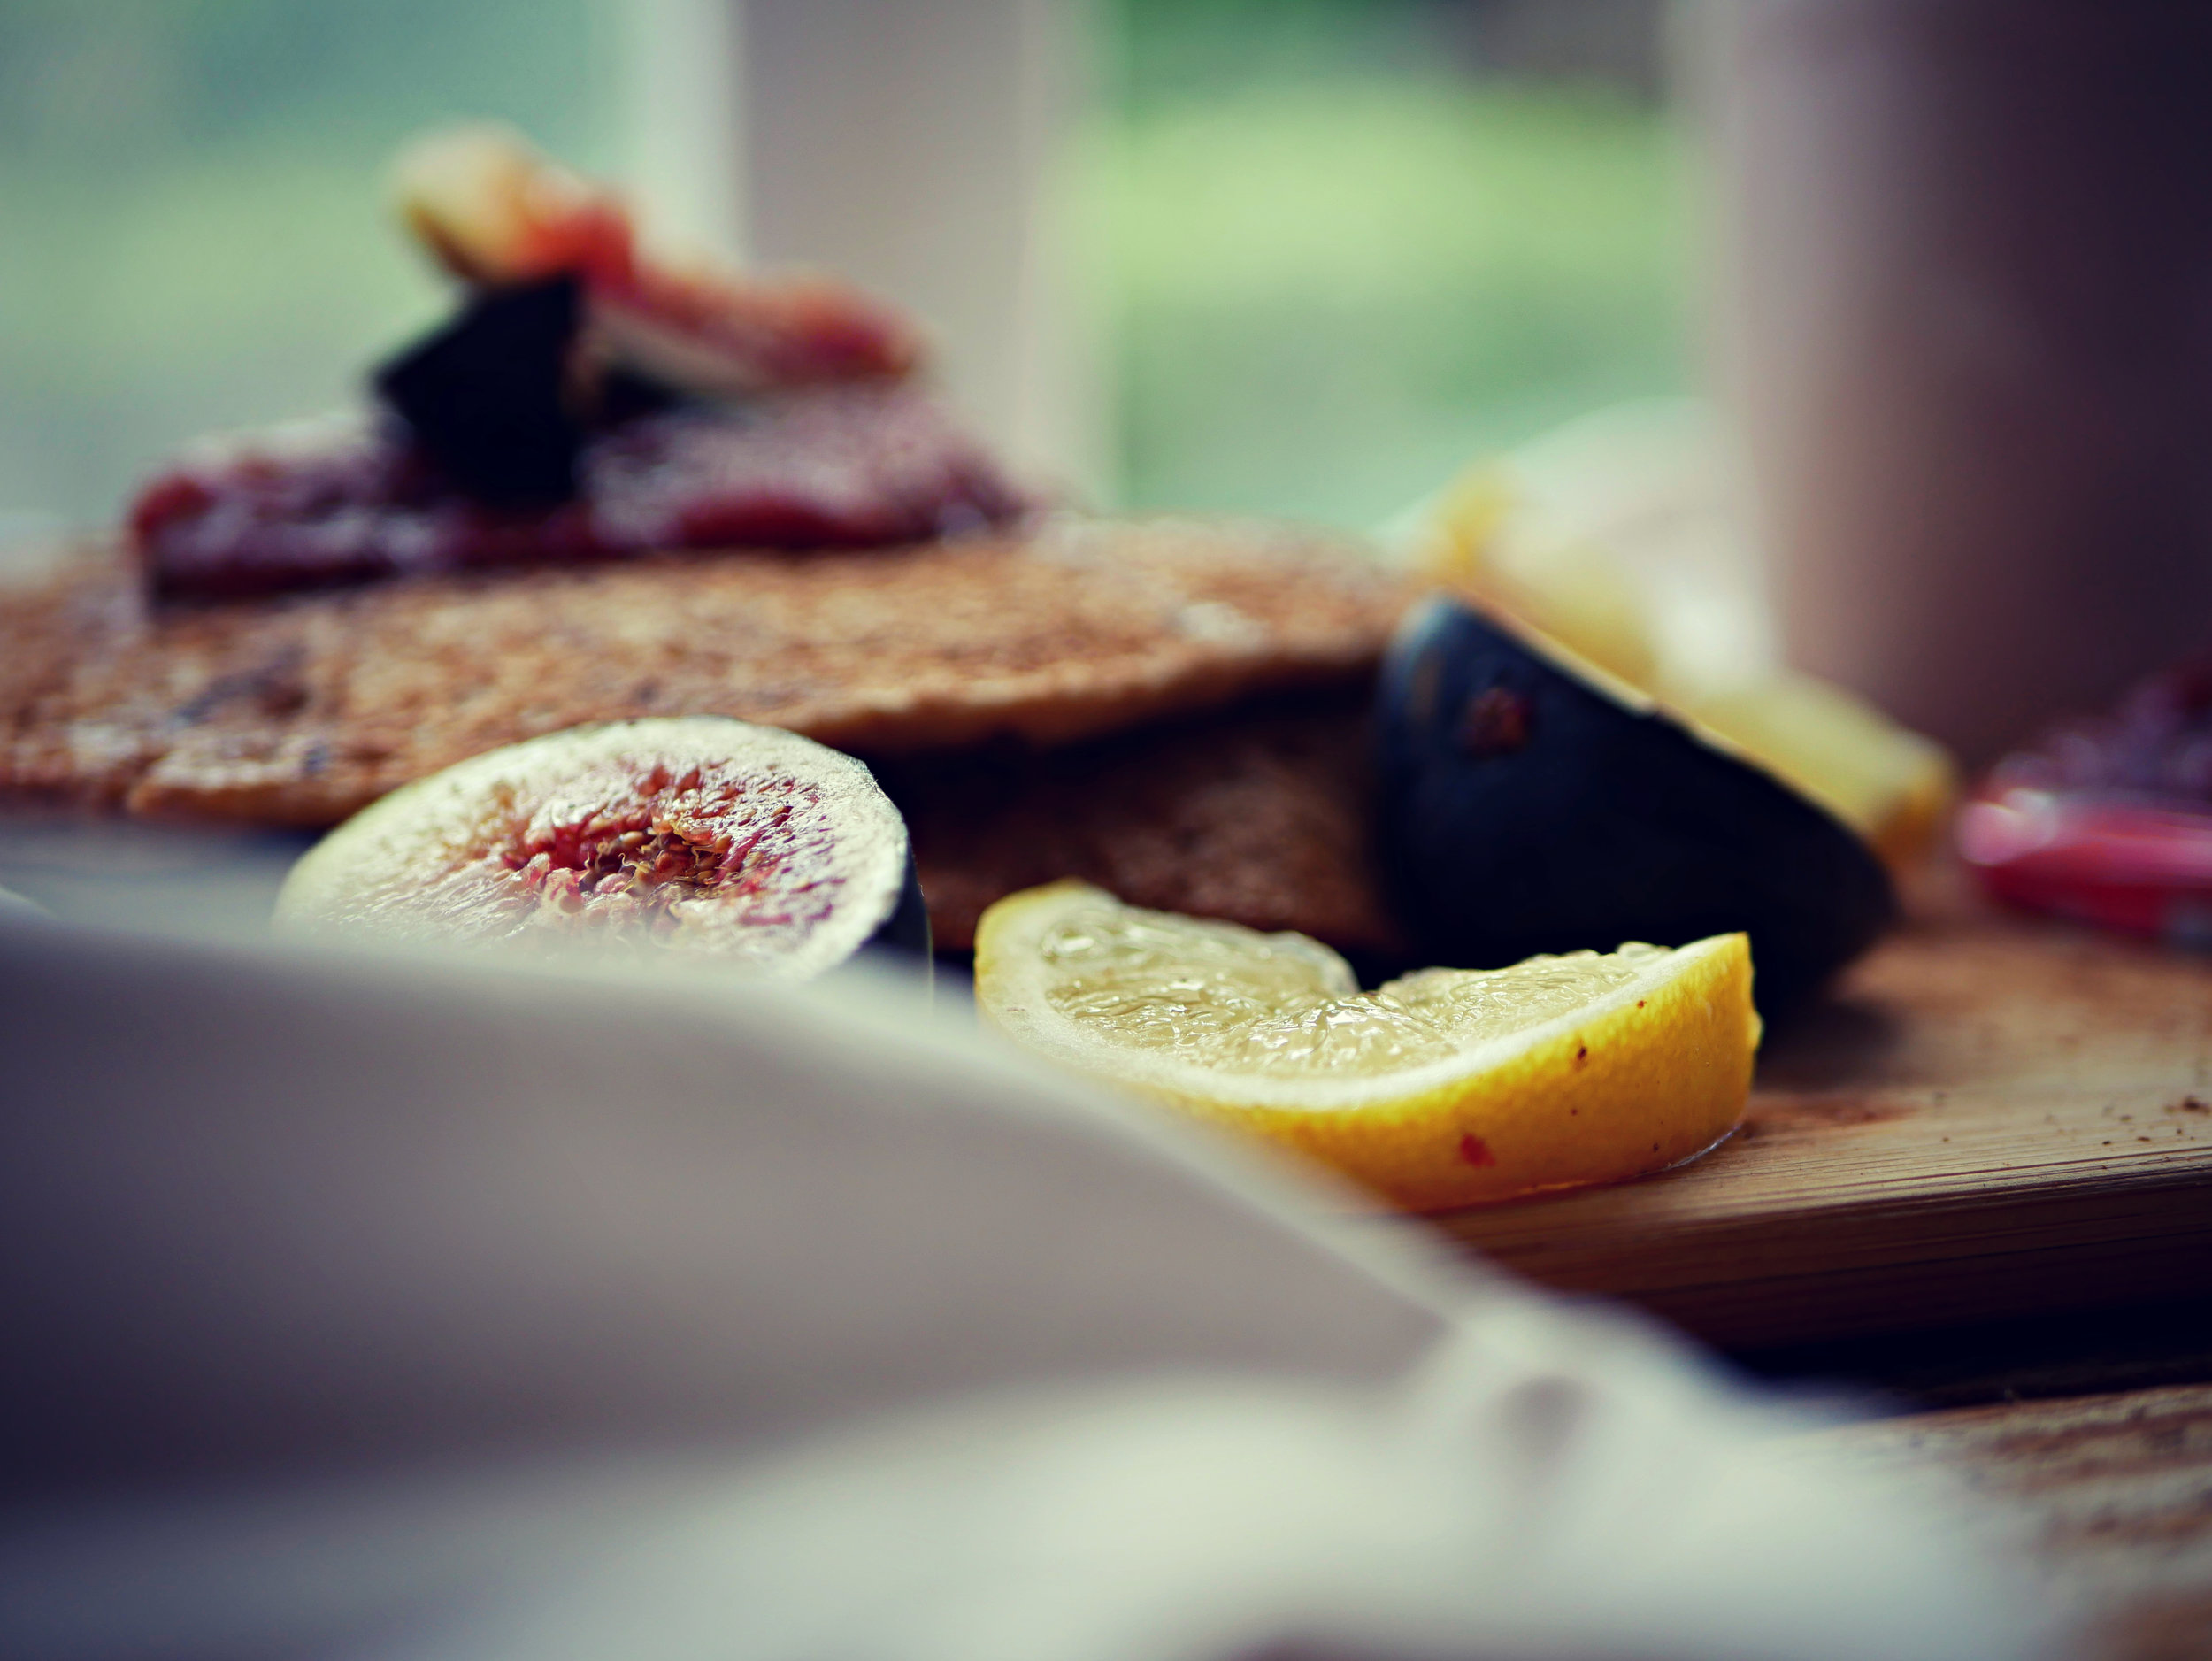 lemon and figs on pancakes